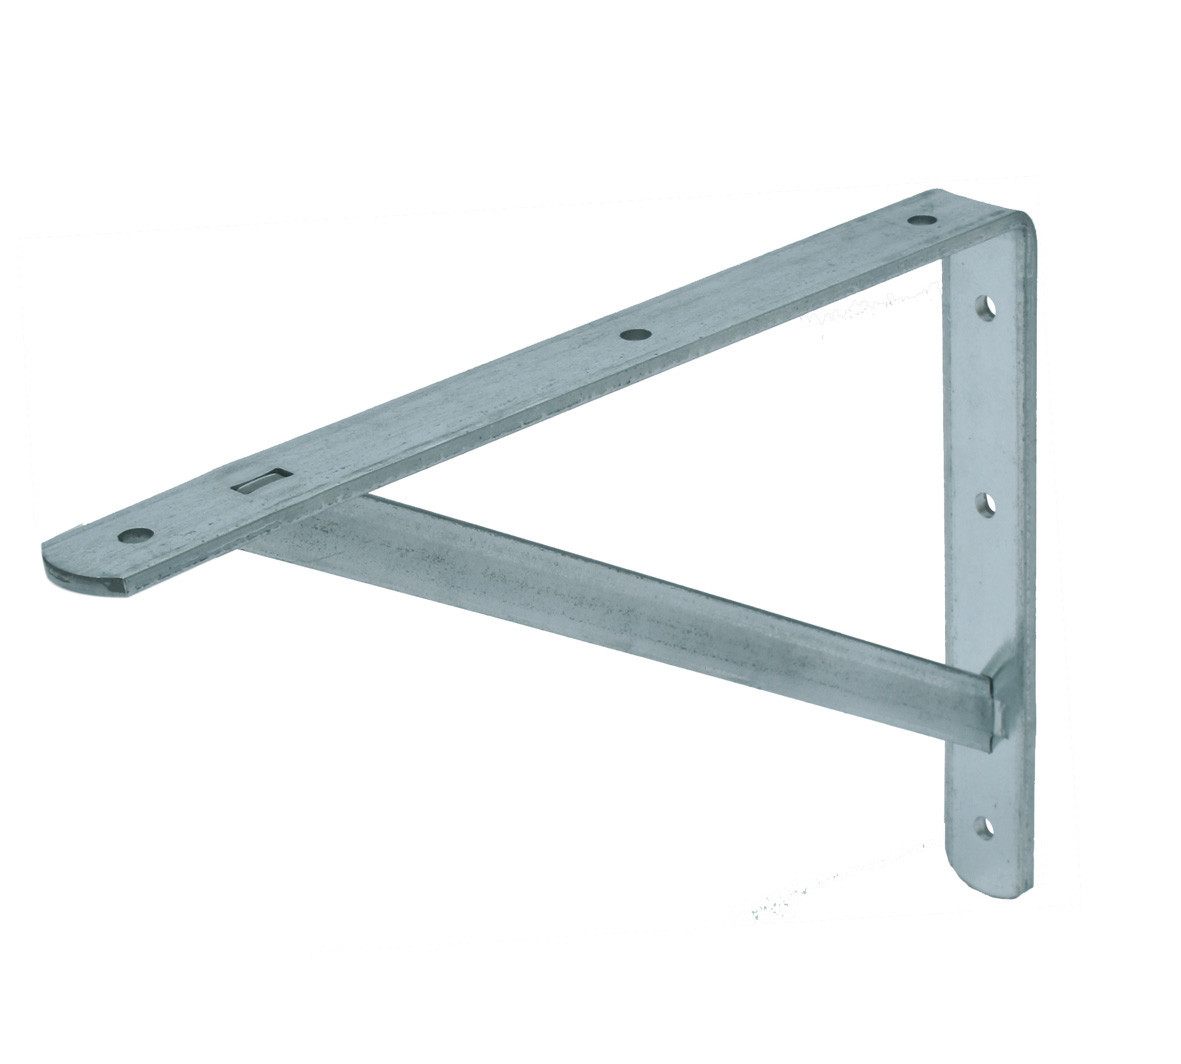 Shelf bracket 200x300 30x4/20x4 VB